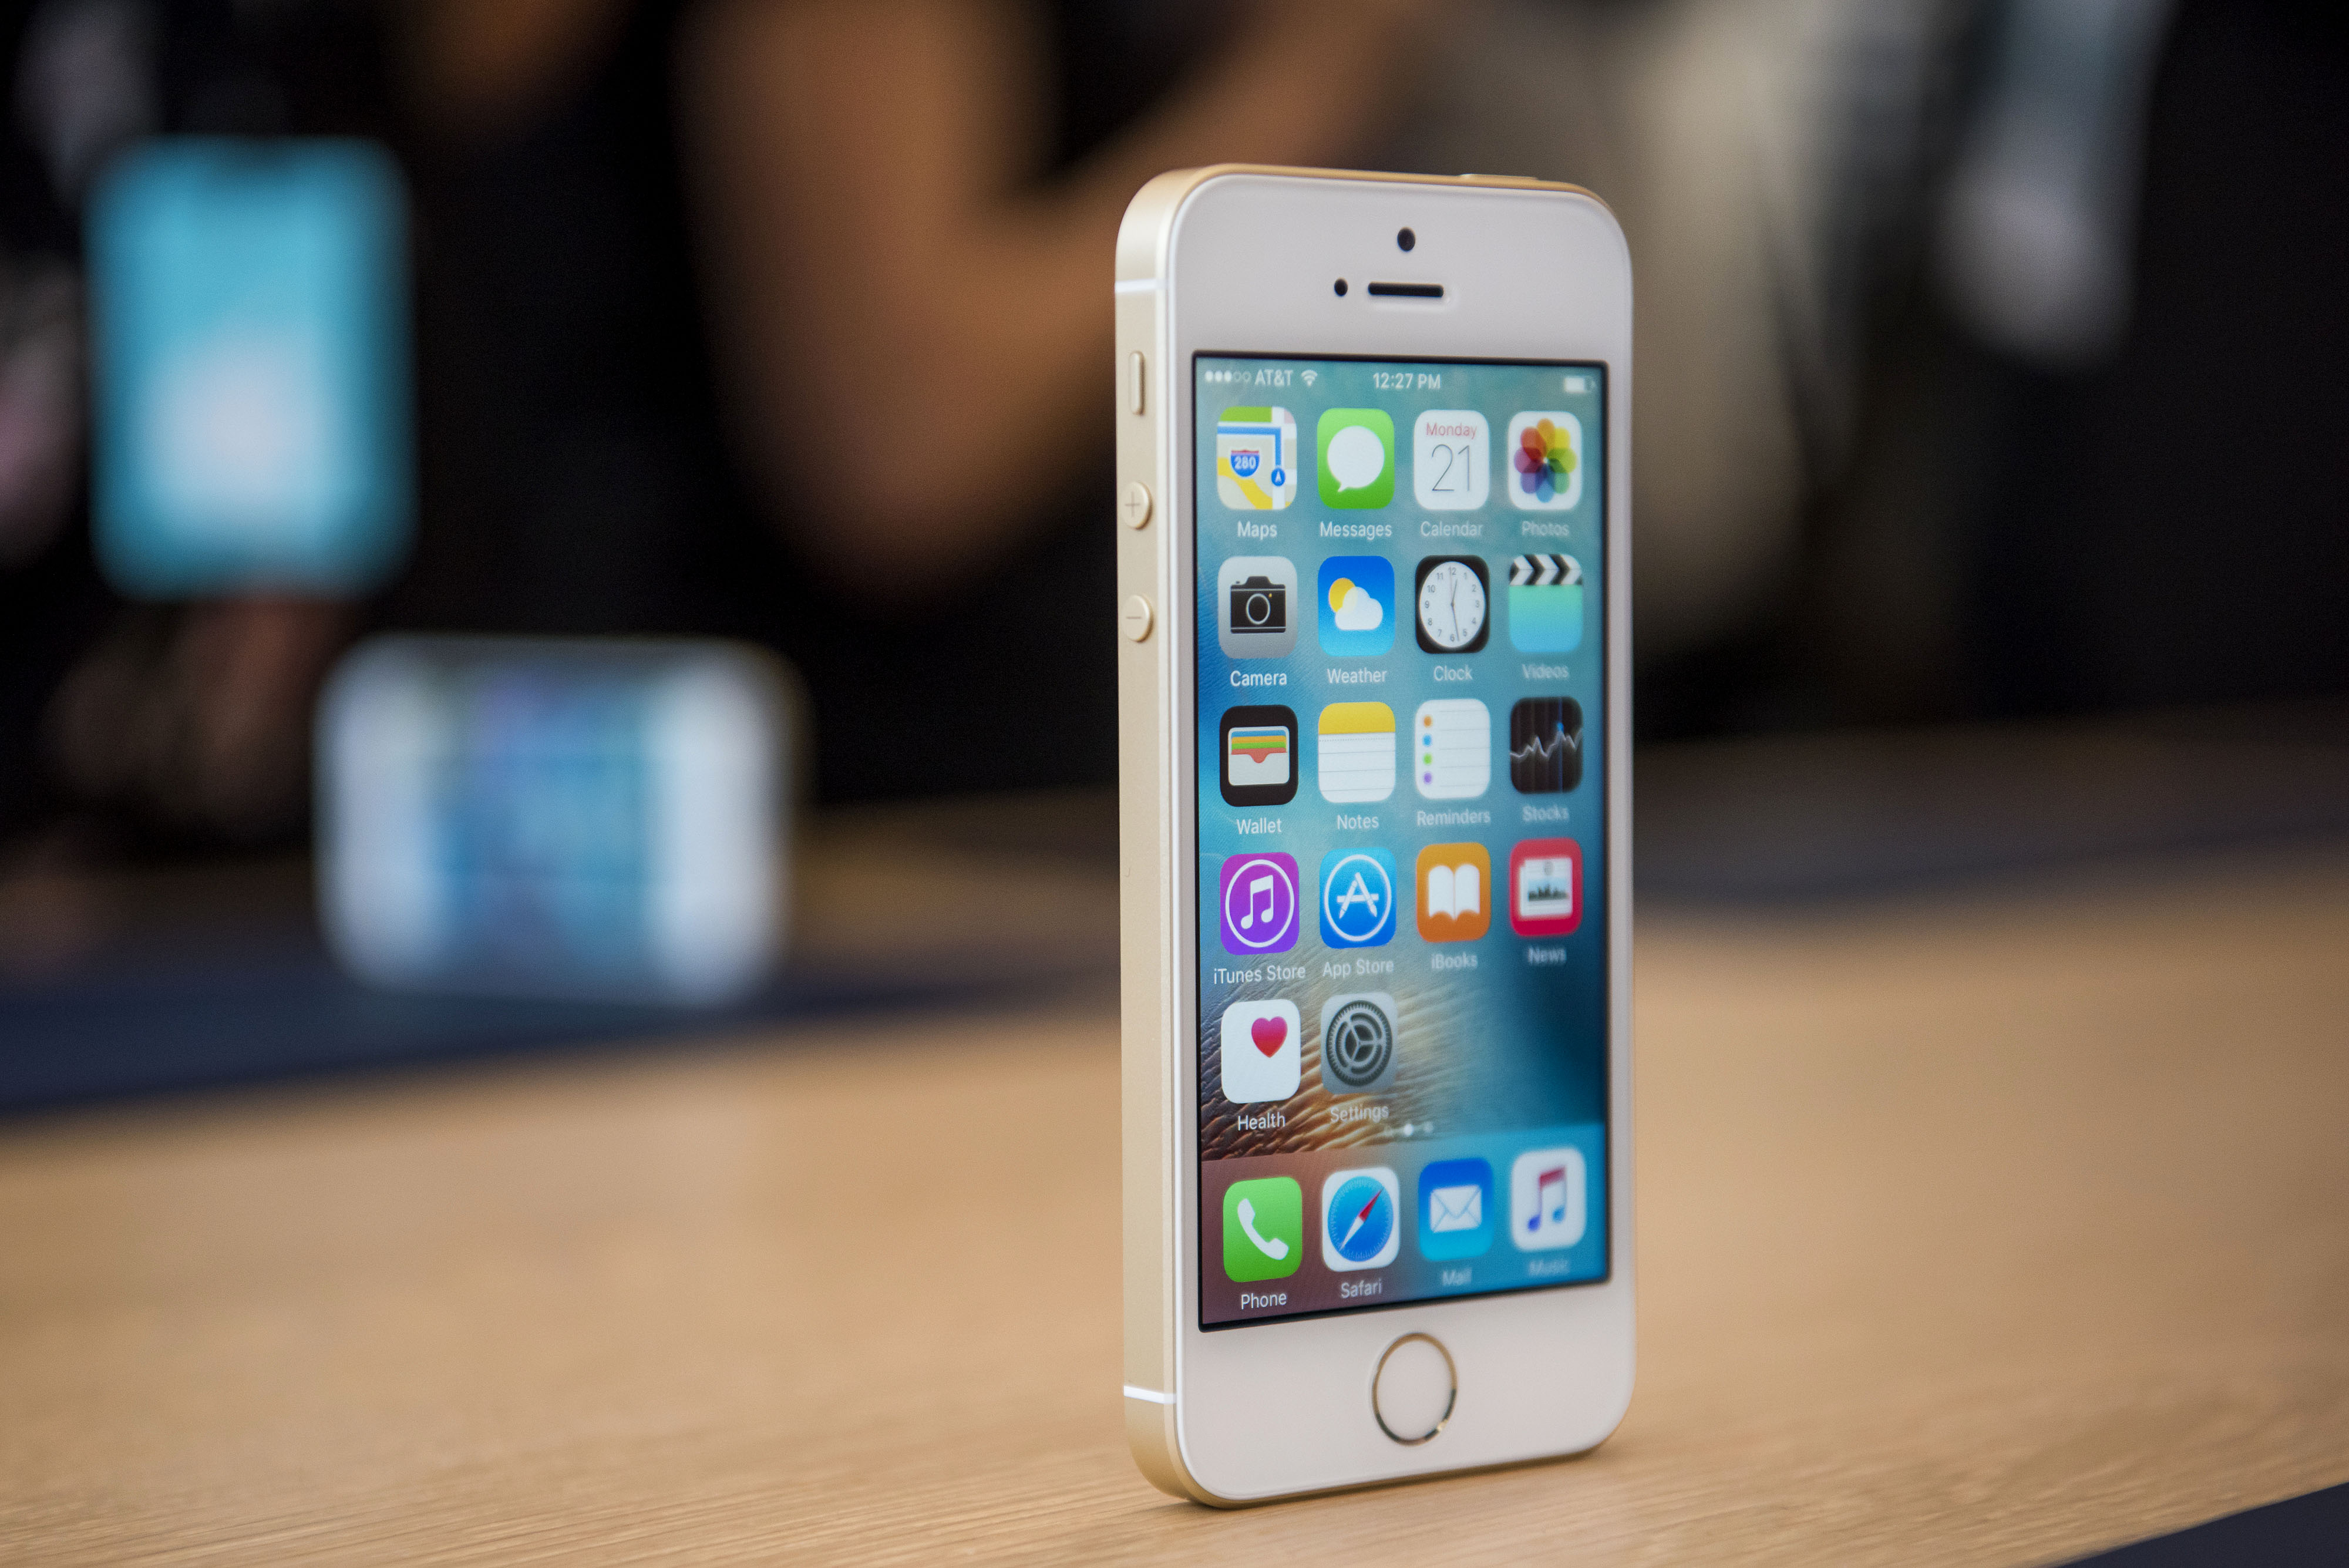 The new Apple Inc. iPhone SE smartphone is displayed after an event in Cupertino, California, U.S., on Monday, March 21, 2016.